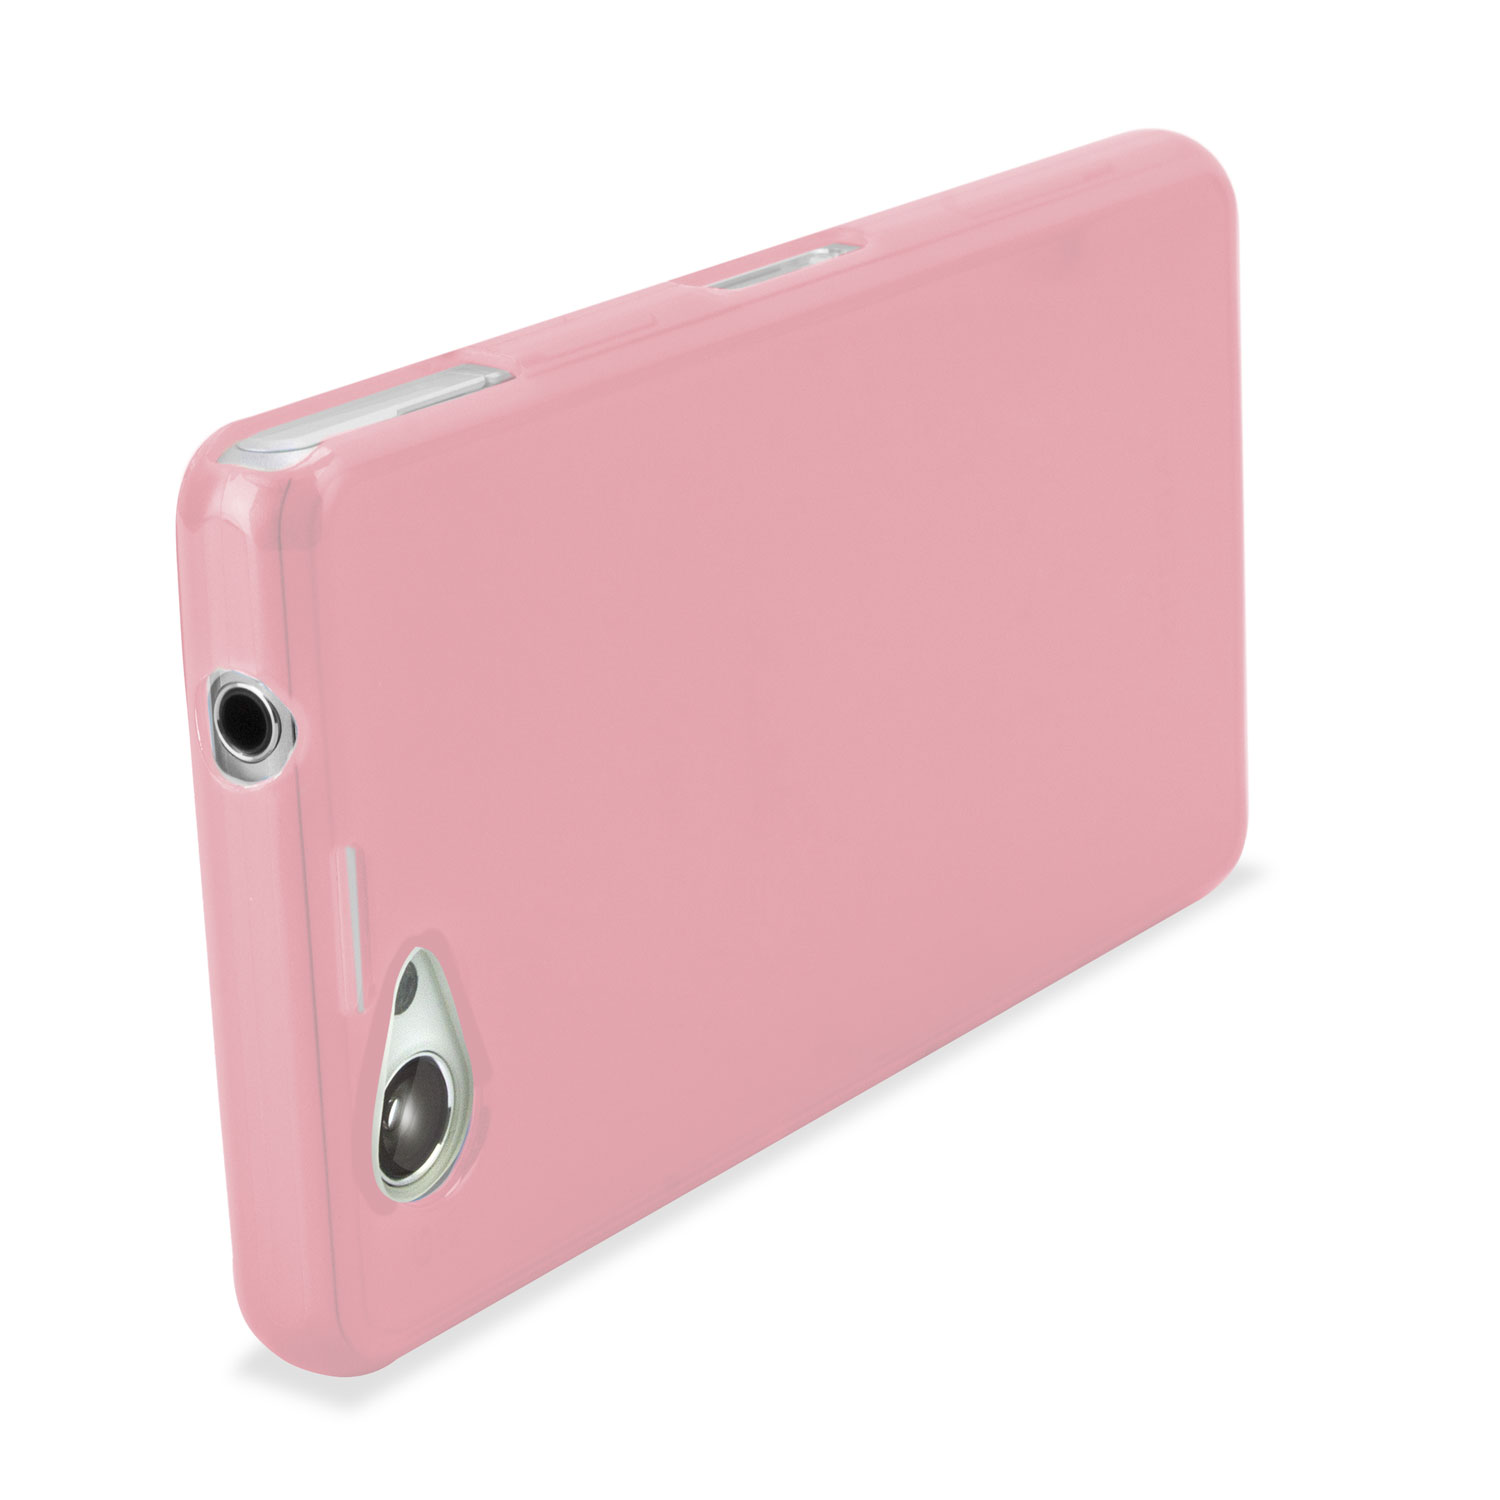 Flexishield Case For Sony Xperia Z1 Compact Powder Pink